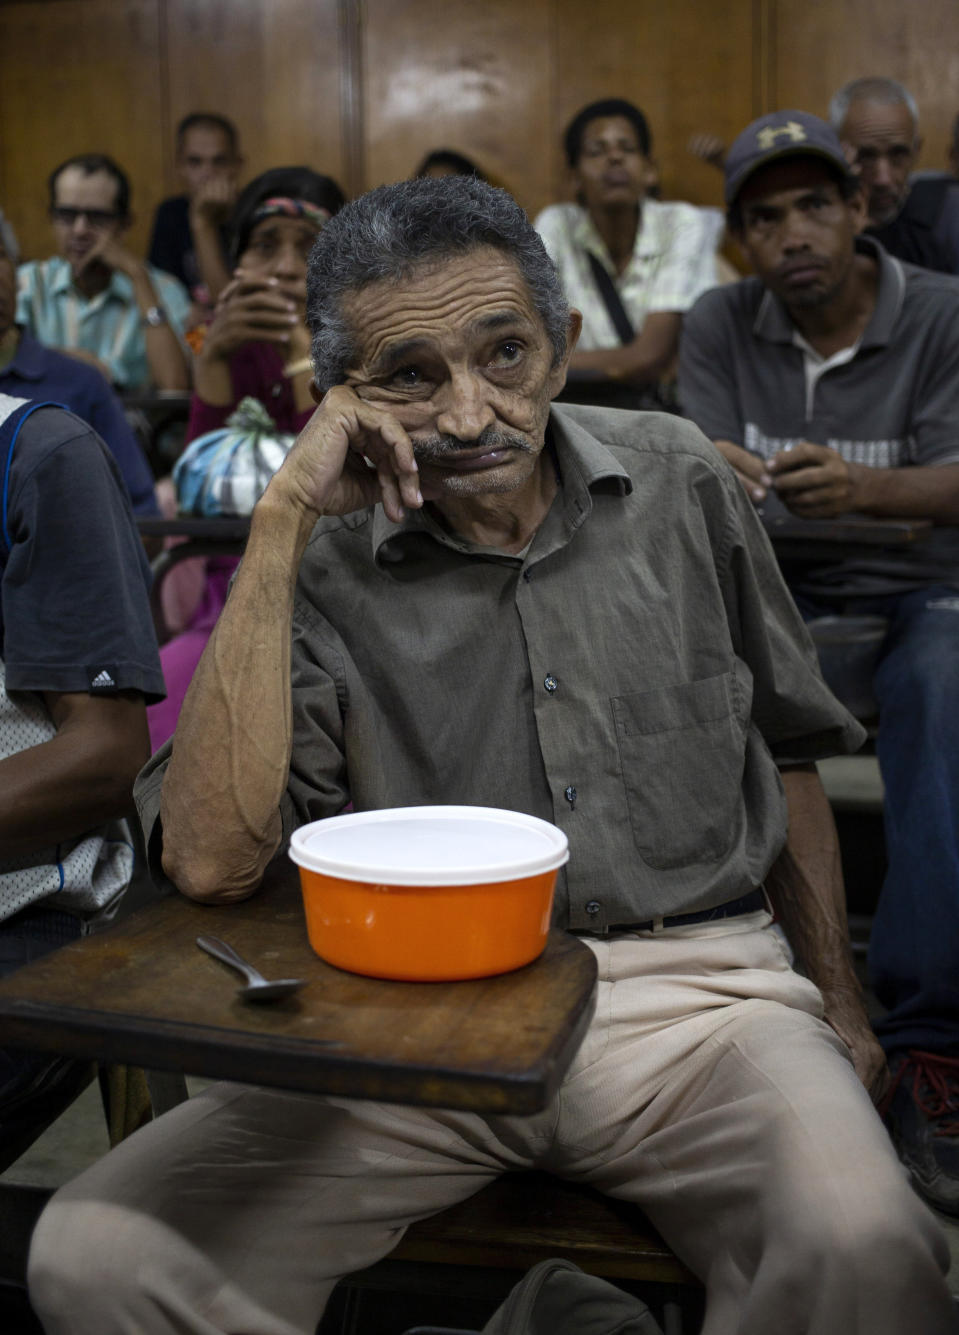 In this Feb. 27, 2020 photo, Orlando Blanco, 68, waits for food to be served at a religion center in The Cemetery slum in Caracas, Venezuela. In the midst of a severe crisis, families in Venezuela struggle to consume enough food daily. A recent study by the UN World Food Program reveals that one in three residents of the South American country has difficulty bringing food to the table and fails to meet their basic nutritional requirements. (AP Photo/Ariana Cubillos)